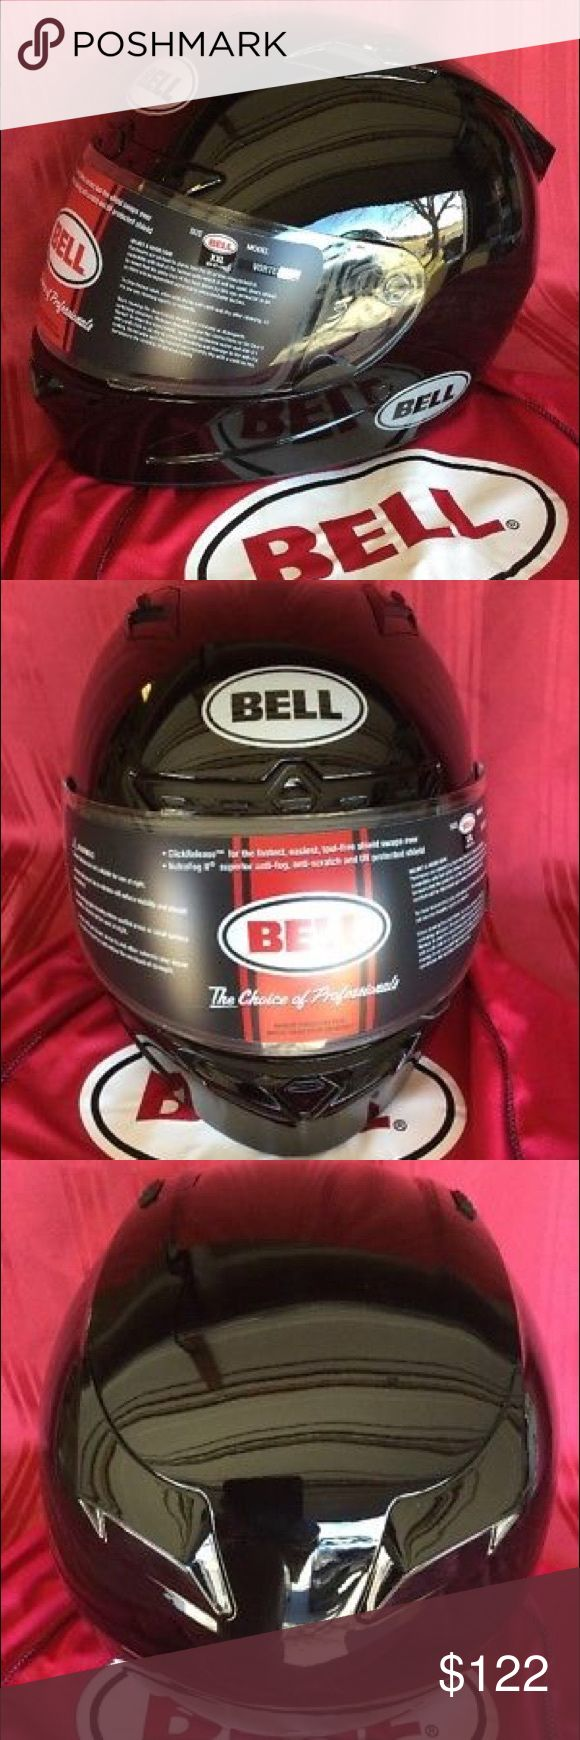 BELL VORTEX FULL FACE SOLID BLACK HELMET XXL NIB BELL VORTEX FULL FACE SOLID BLACK MOTORCYCLE HELMET XXL  NEW IN BOX BELL Accessories Hats